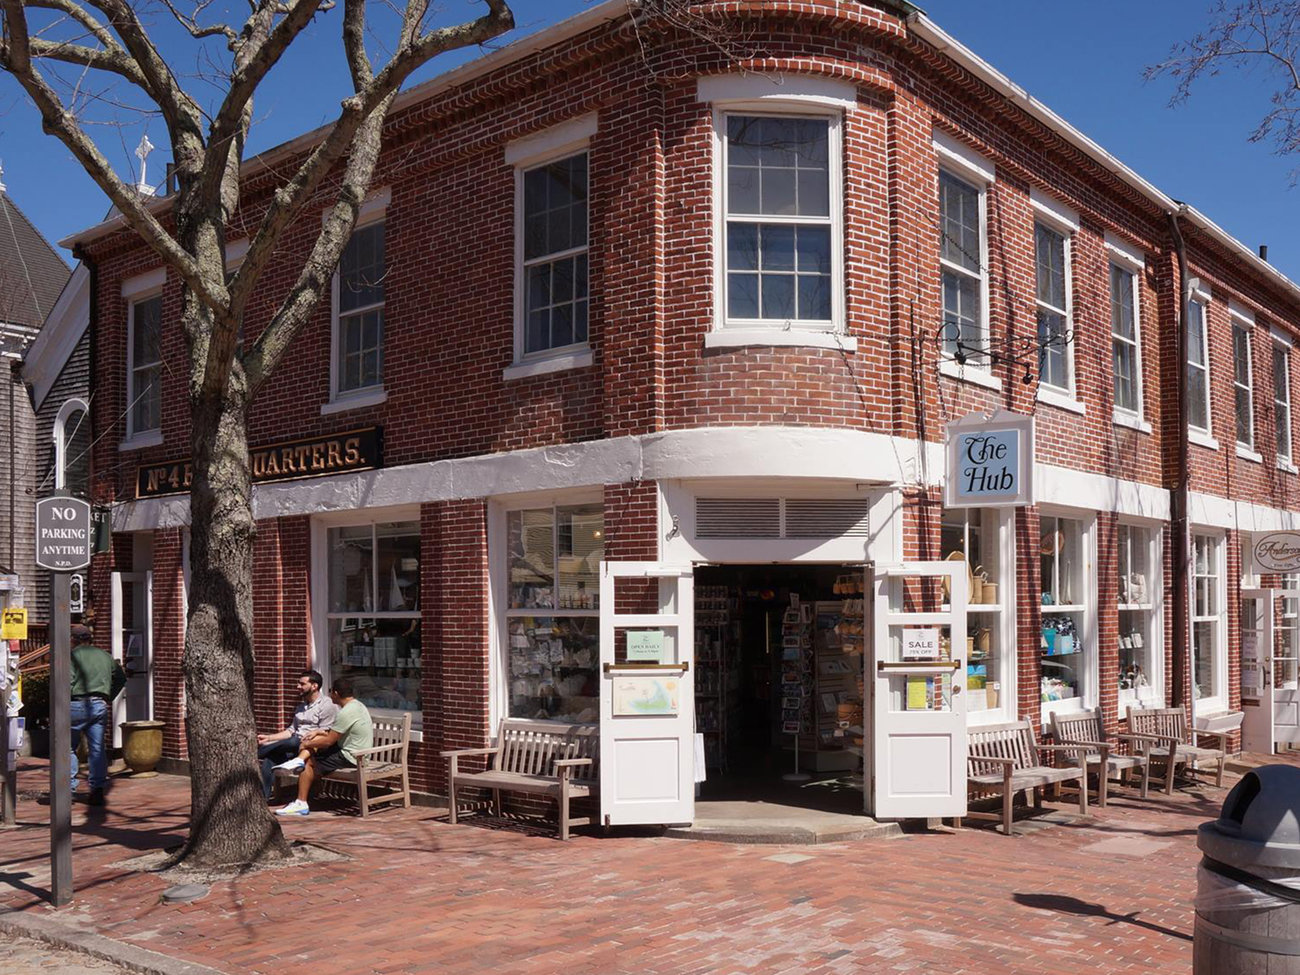 The Hub Store in Nantucket